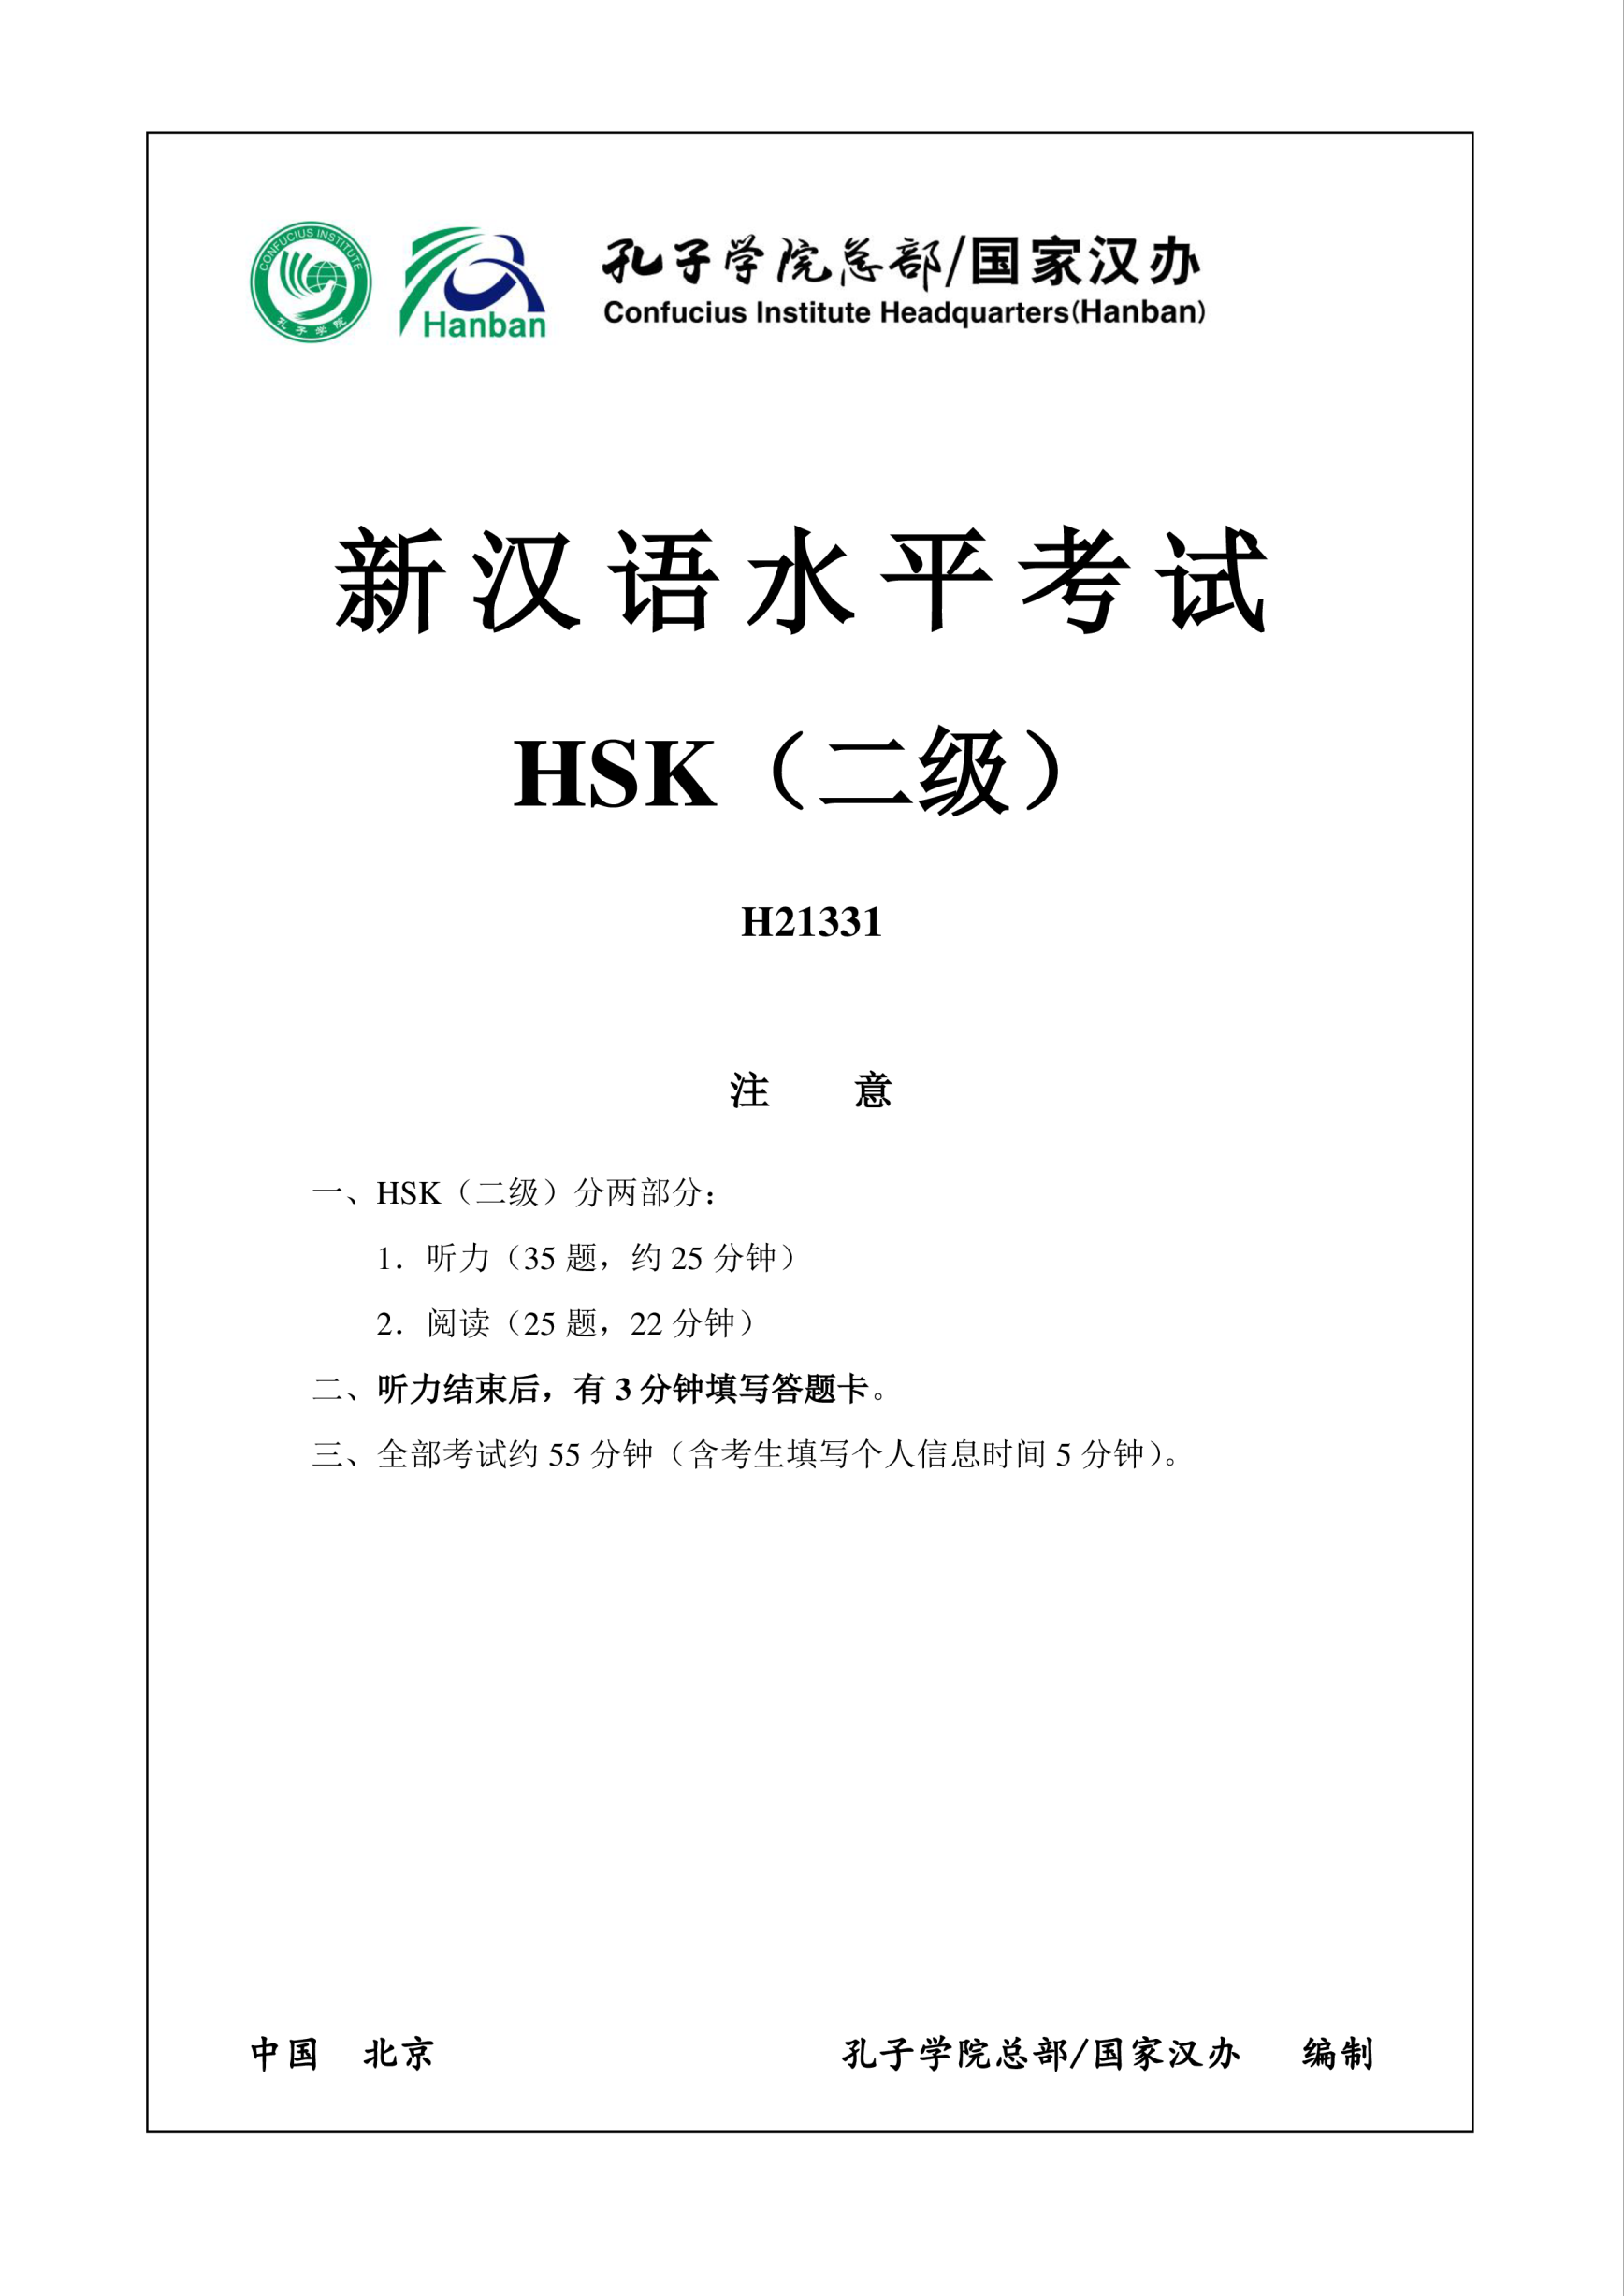 template preview imageHSK2 Chinese Exam including Answers # HSK2 H21331